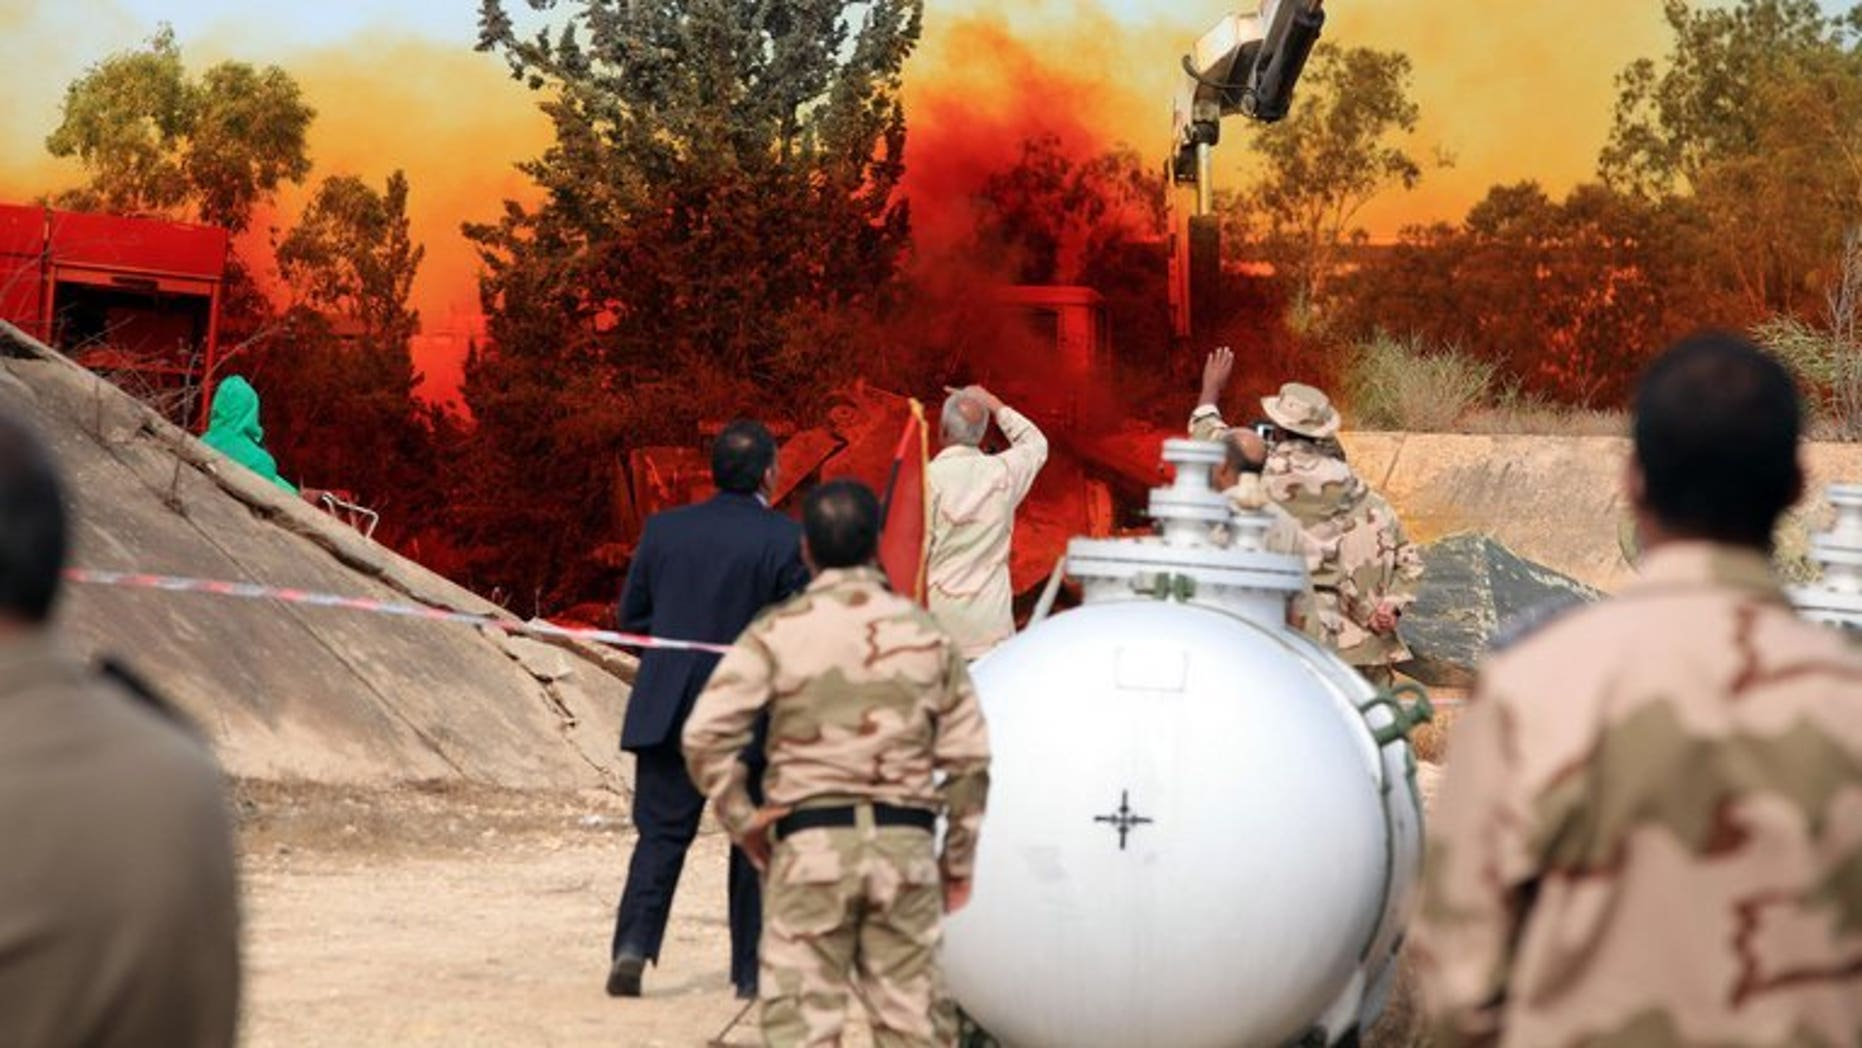 A team of Libyan experts and military engineers monitor a dump tank, under the supervision of the United Nations, in Tripoli on November 11, 2012. Experts were assigned to dump the toxic chemicals found in the air defense missiles and ammunition that was left over from the former Libyan leader Moamer Kadhafi's regime.